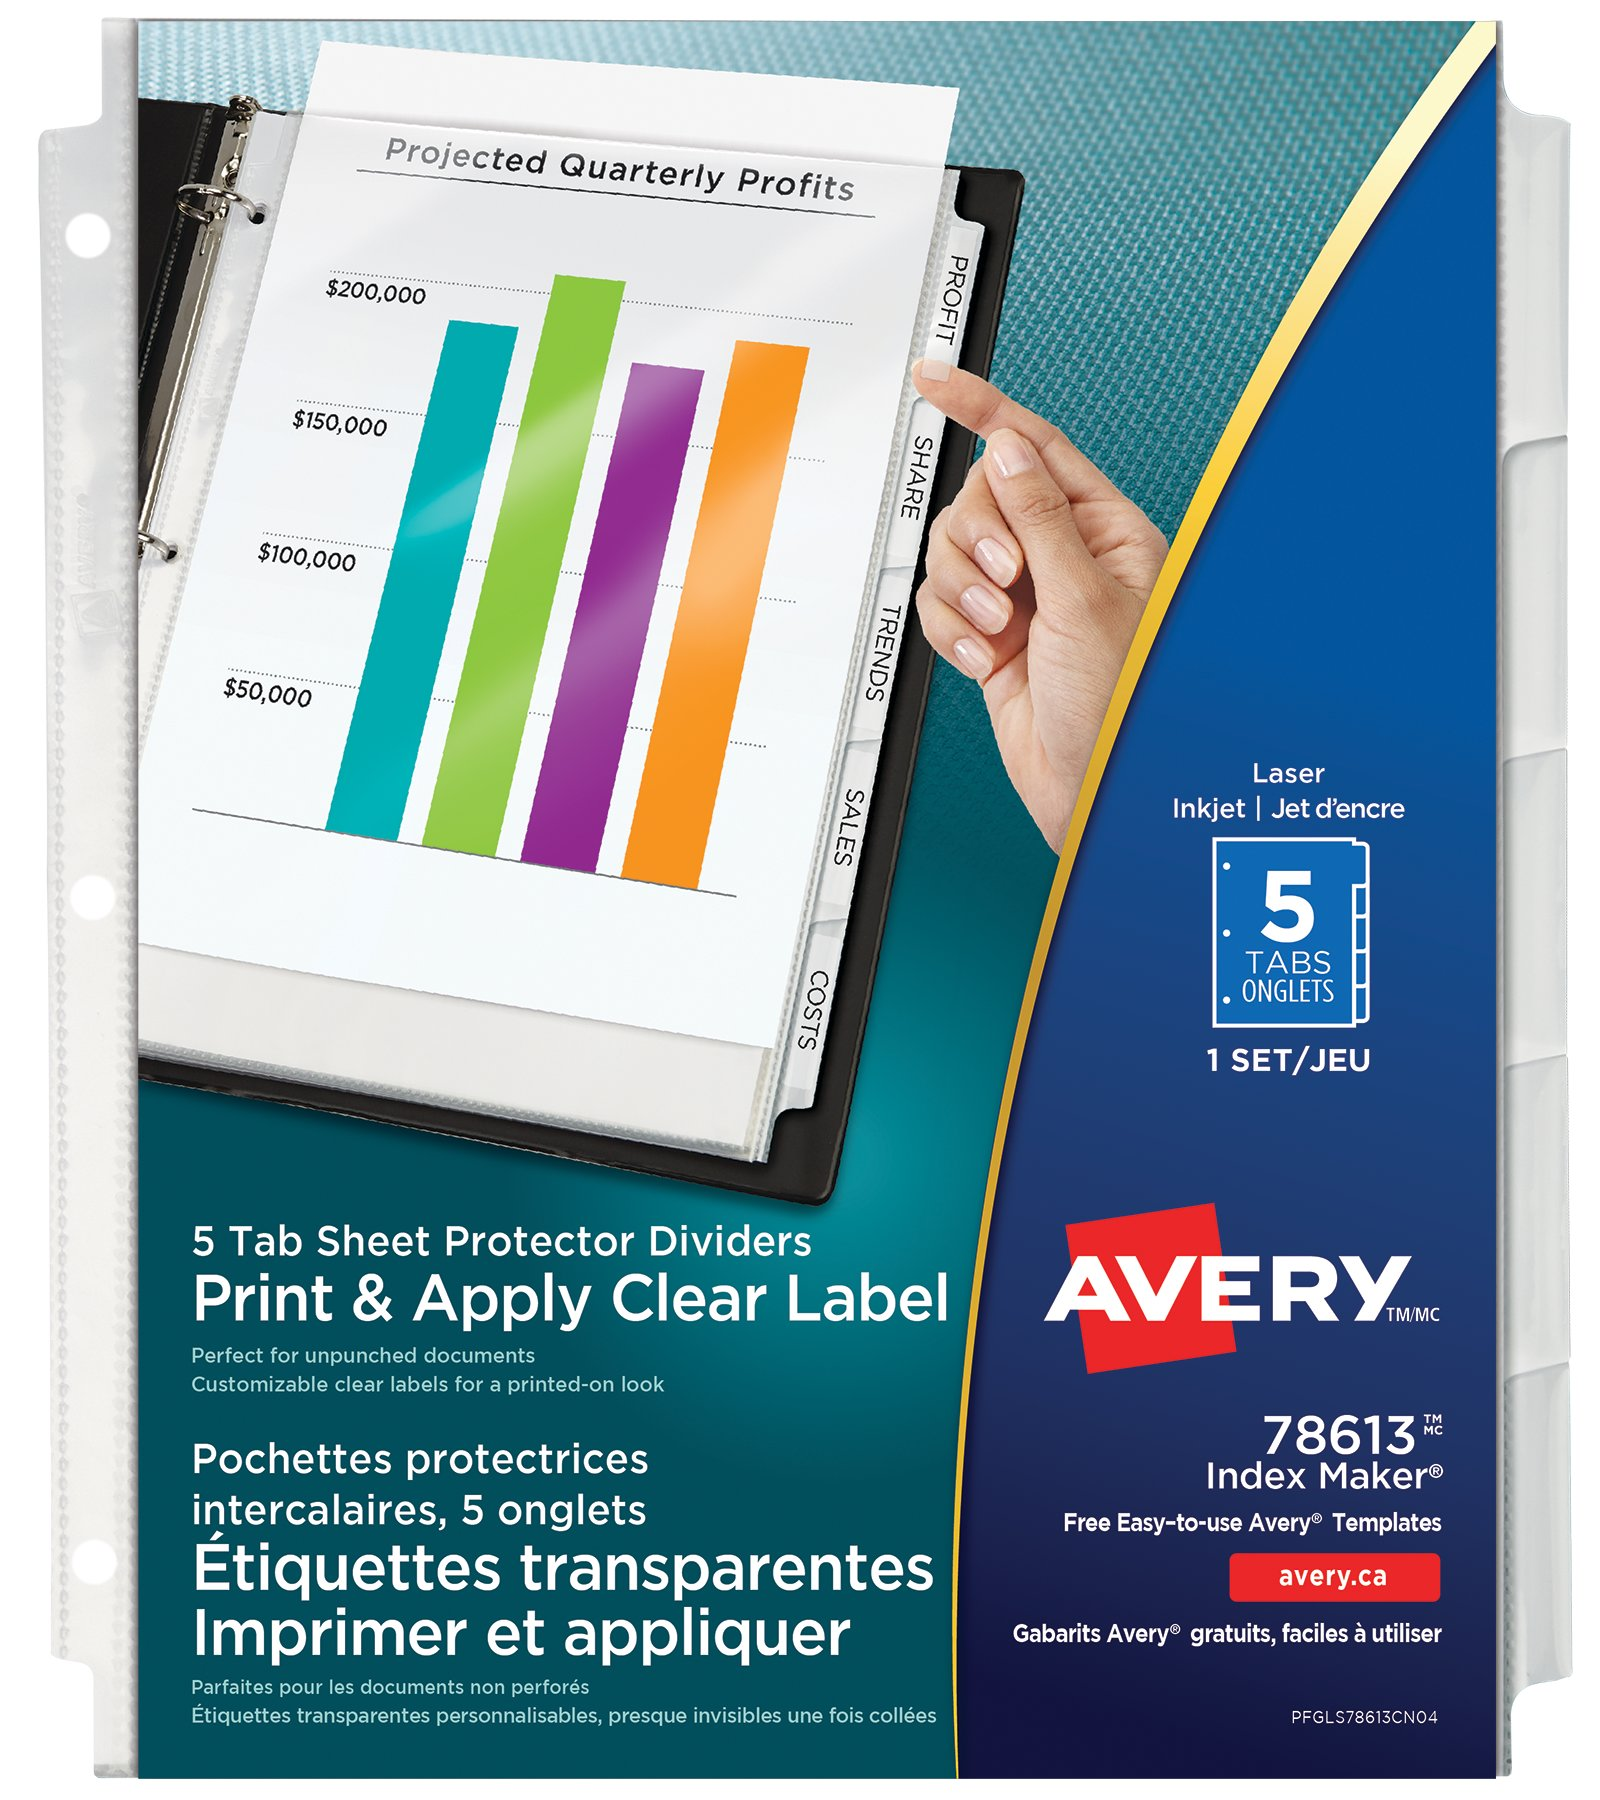 avery easy apply 5 tab template - clear pocket index maker dividers